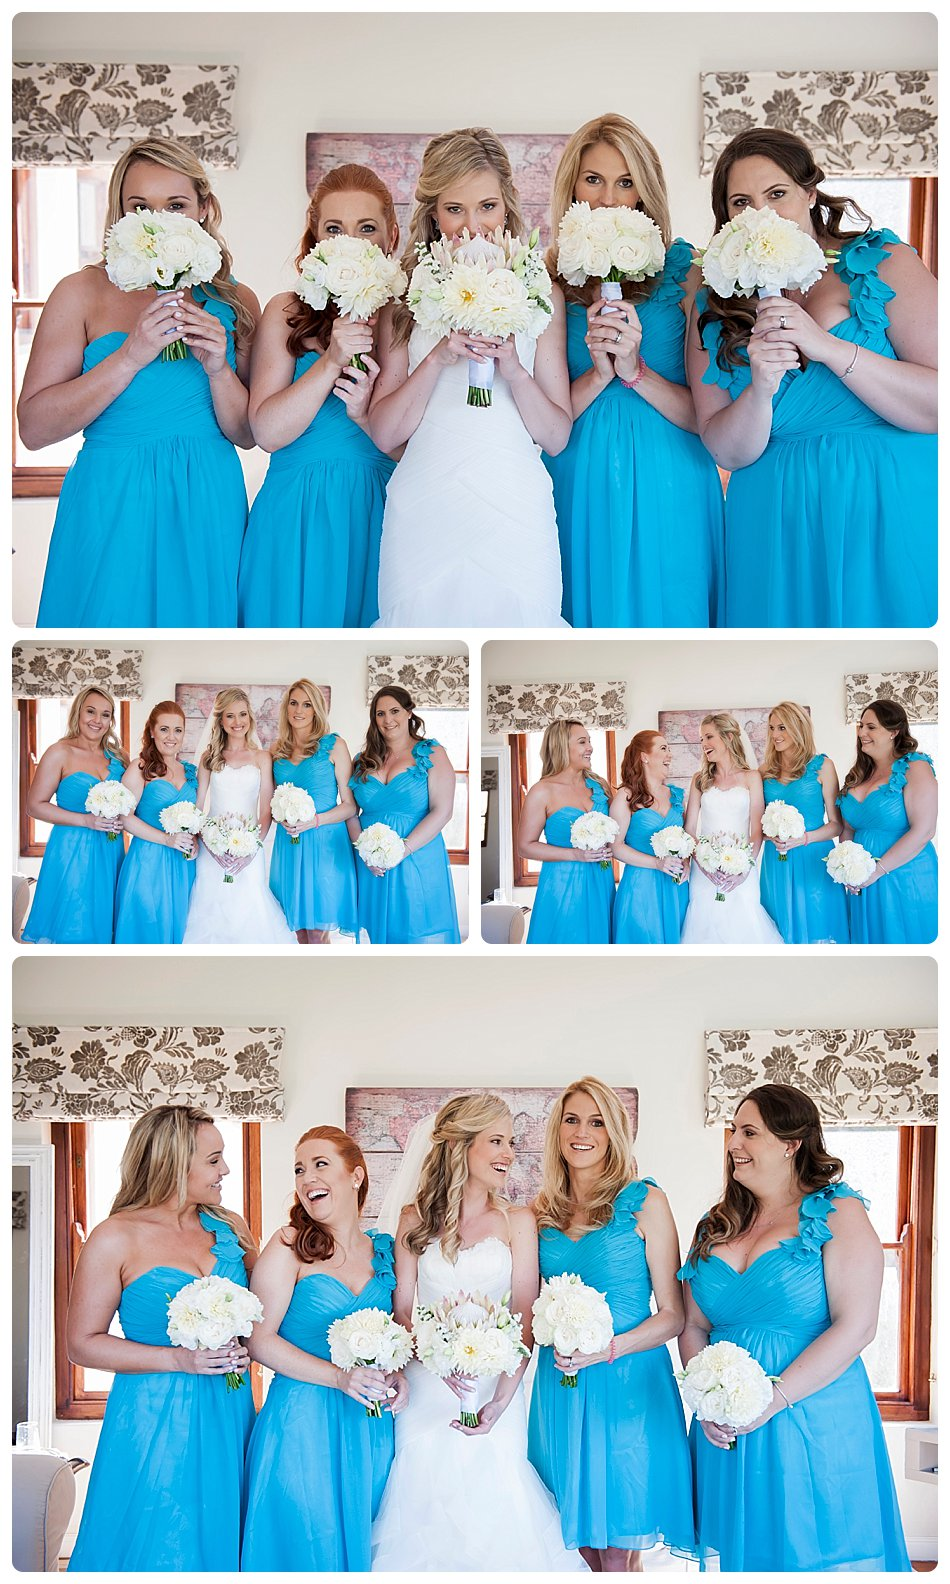 wedding-cape-town-joanne-markland-photography-grangerbay-Paul-jenny-0017